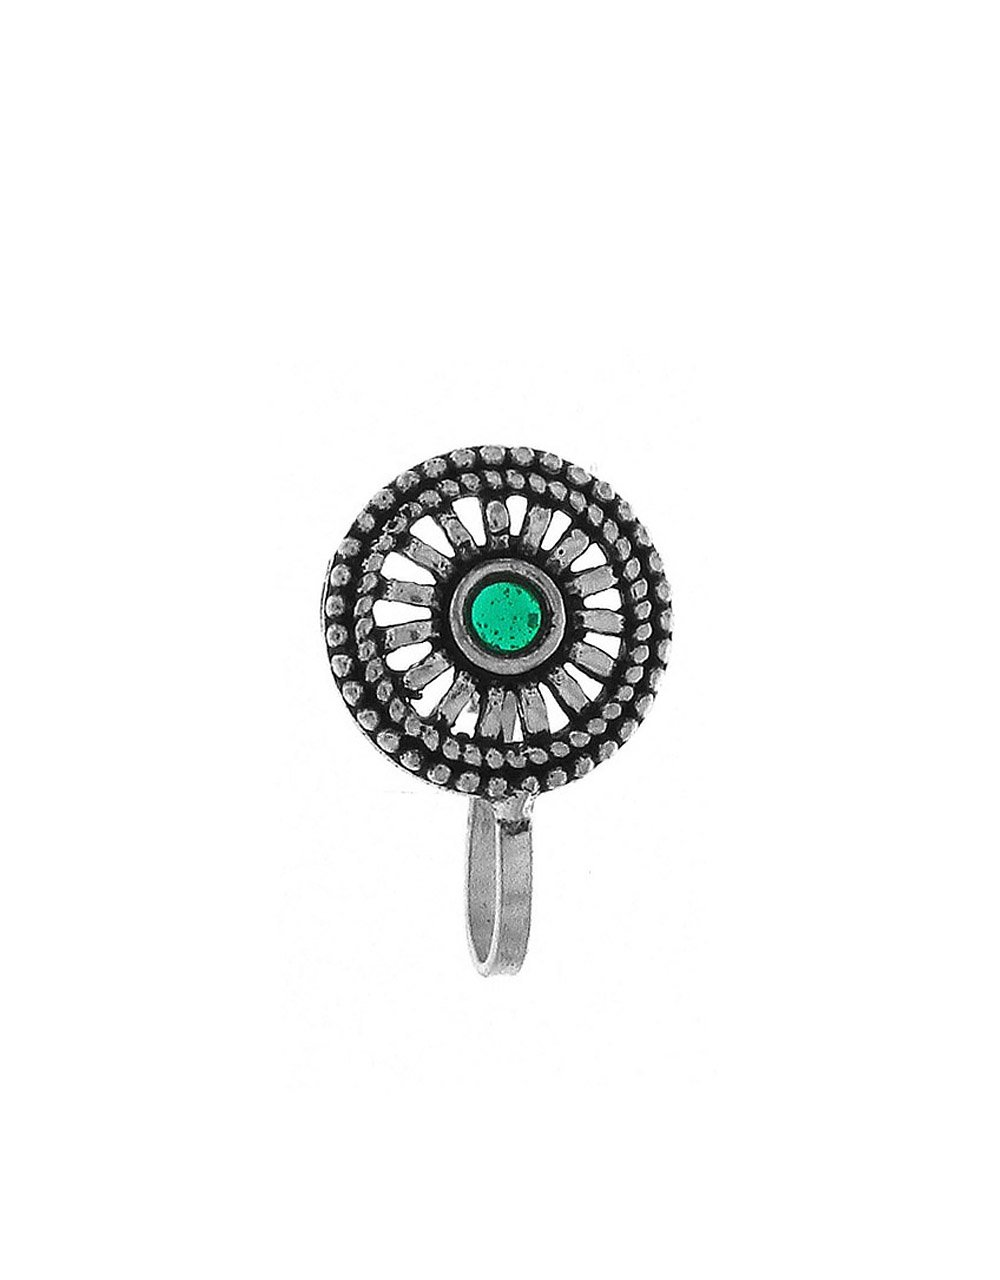 Anuradha Art Silver Finish Styled With Round Shape Wonderful Designer Clip-On Nose Ring/Pin For Women/Girls